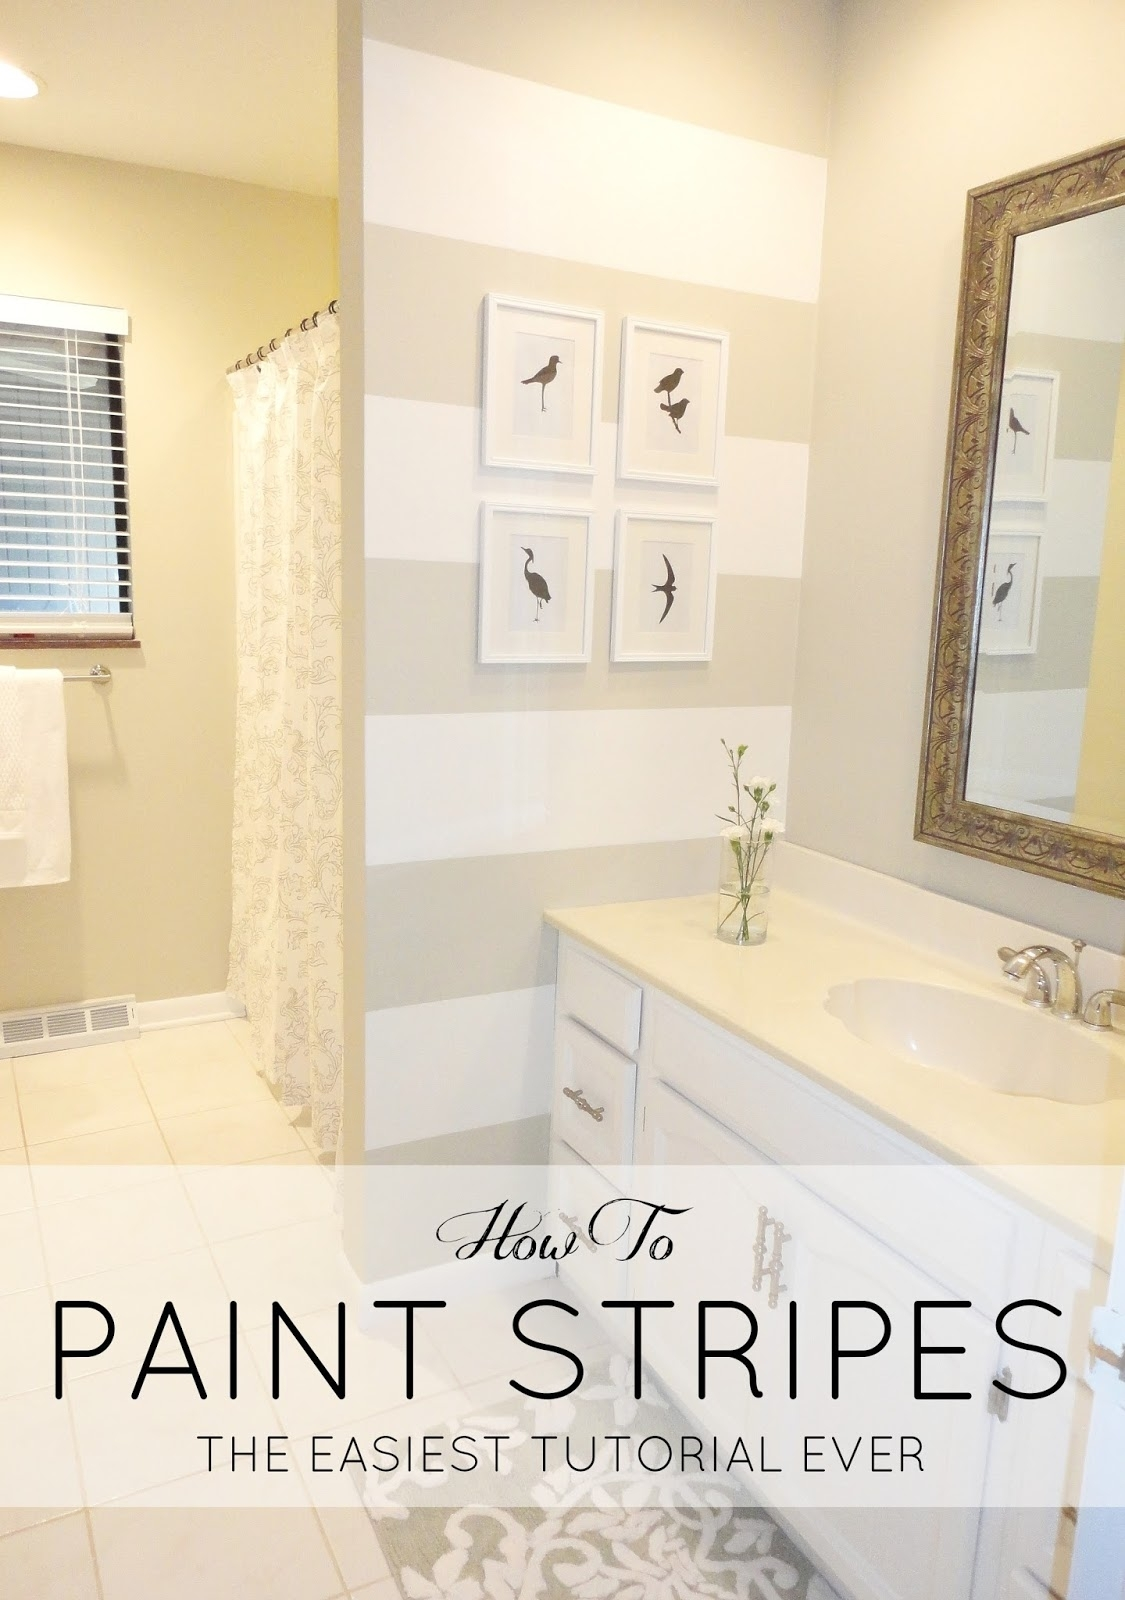 Livelovediy: How To Paint Stripes: The Easiest Tutorial Ever! Intended For Most Recently Released Stripe Wall Accents (View 8 of 15)